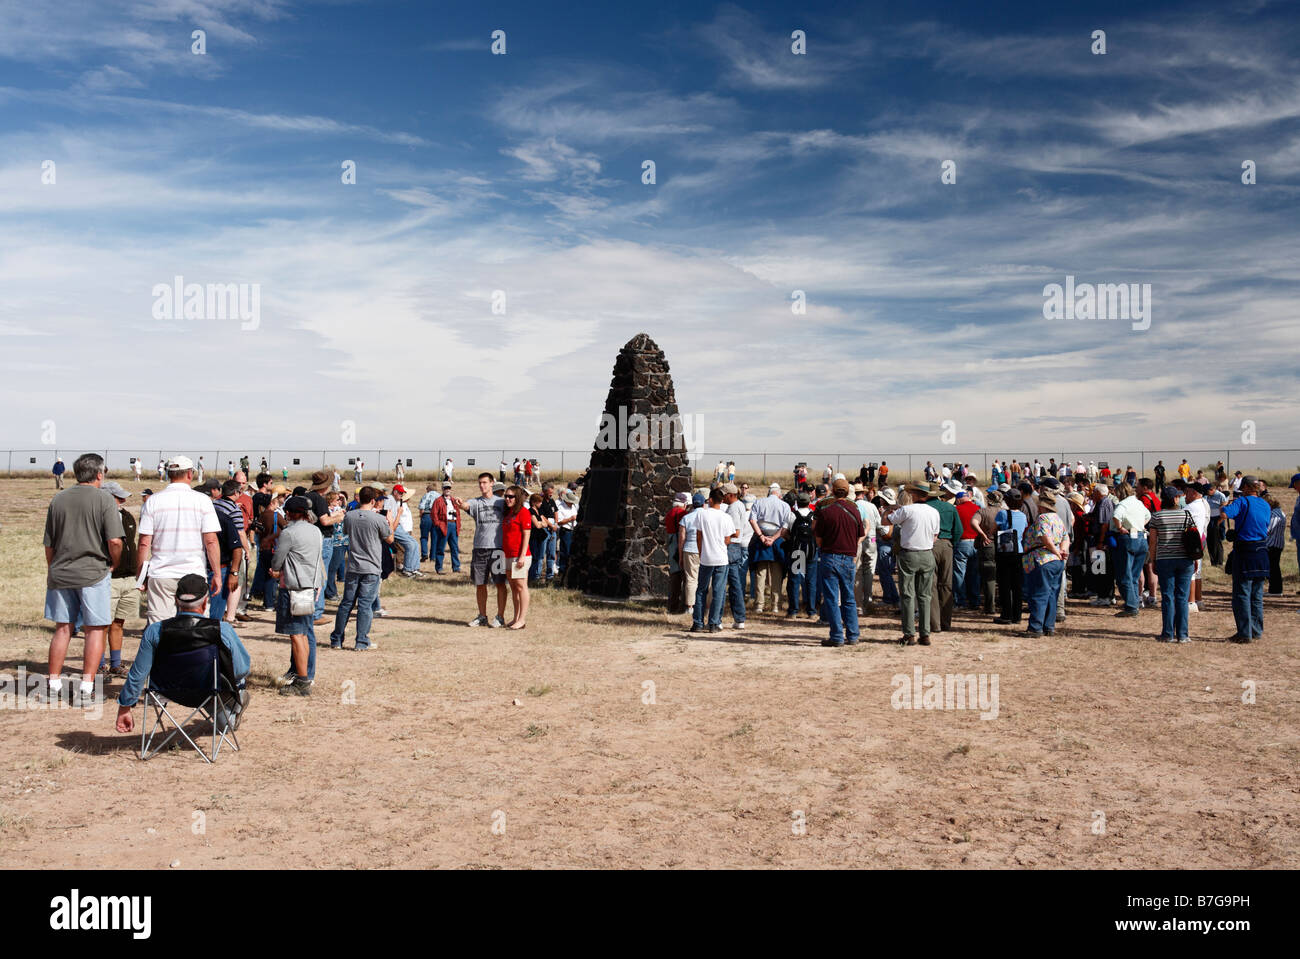 Sightseers gather around the obelisk at Trinity Site, New Mexico, marking the site of the world's first atomic - Stock Image